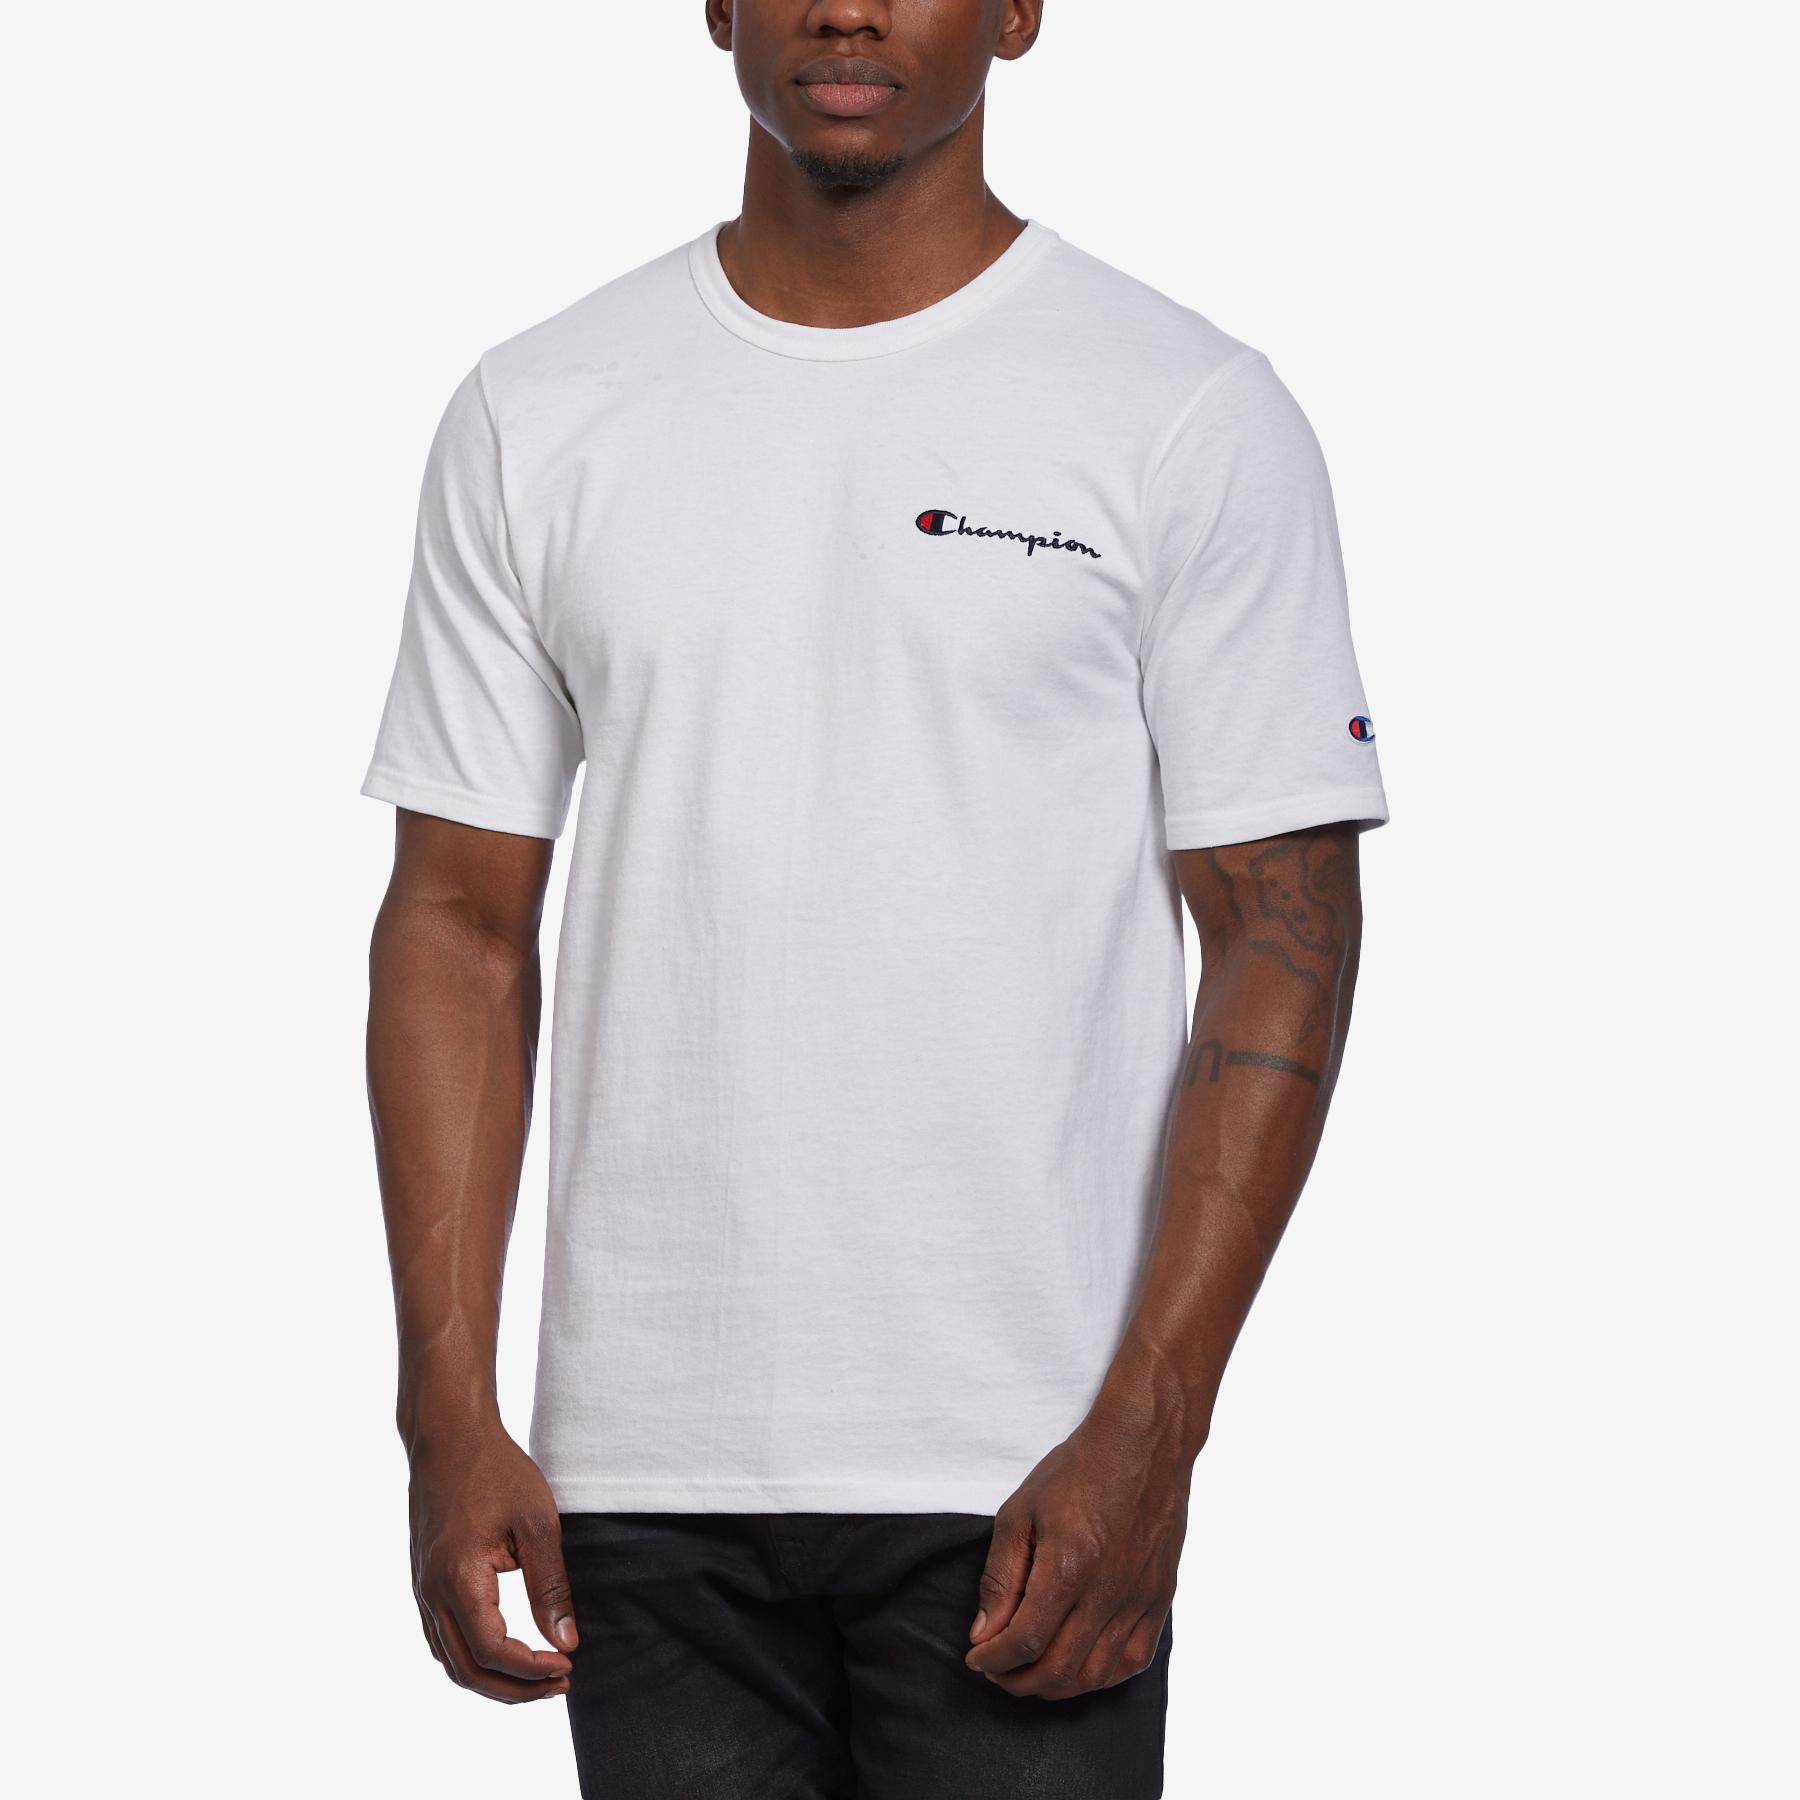 Men's Life Tee, Embroidered Script Logo